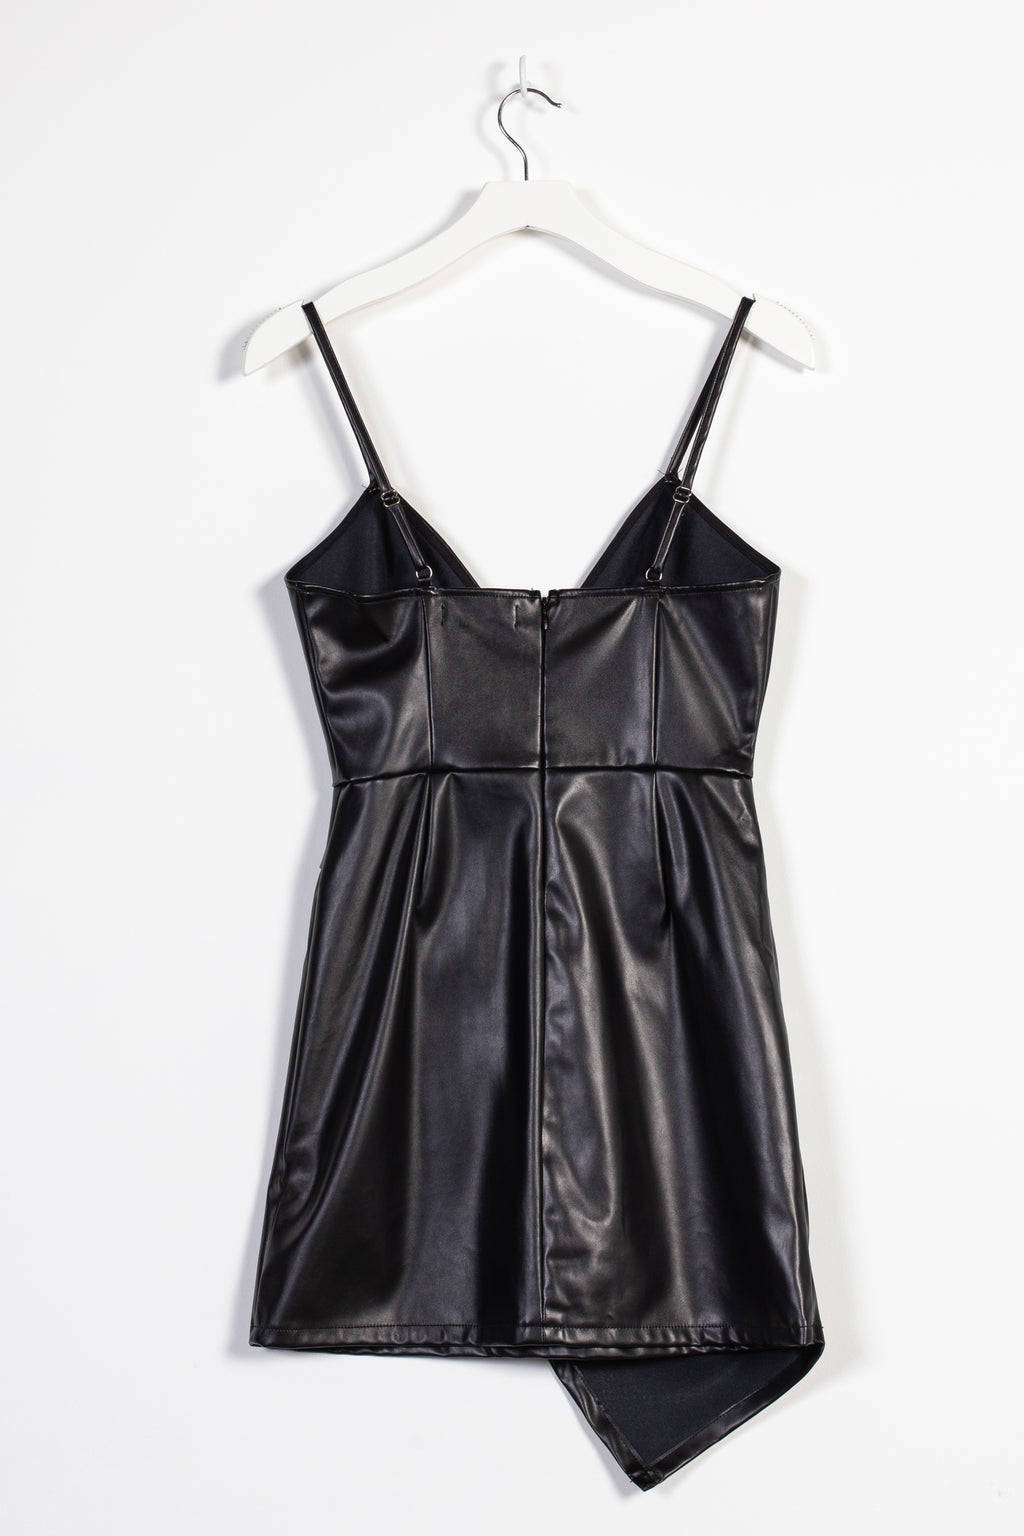 Asymmetrical Vegan Leather Mini Dress - honey